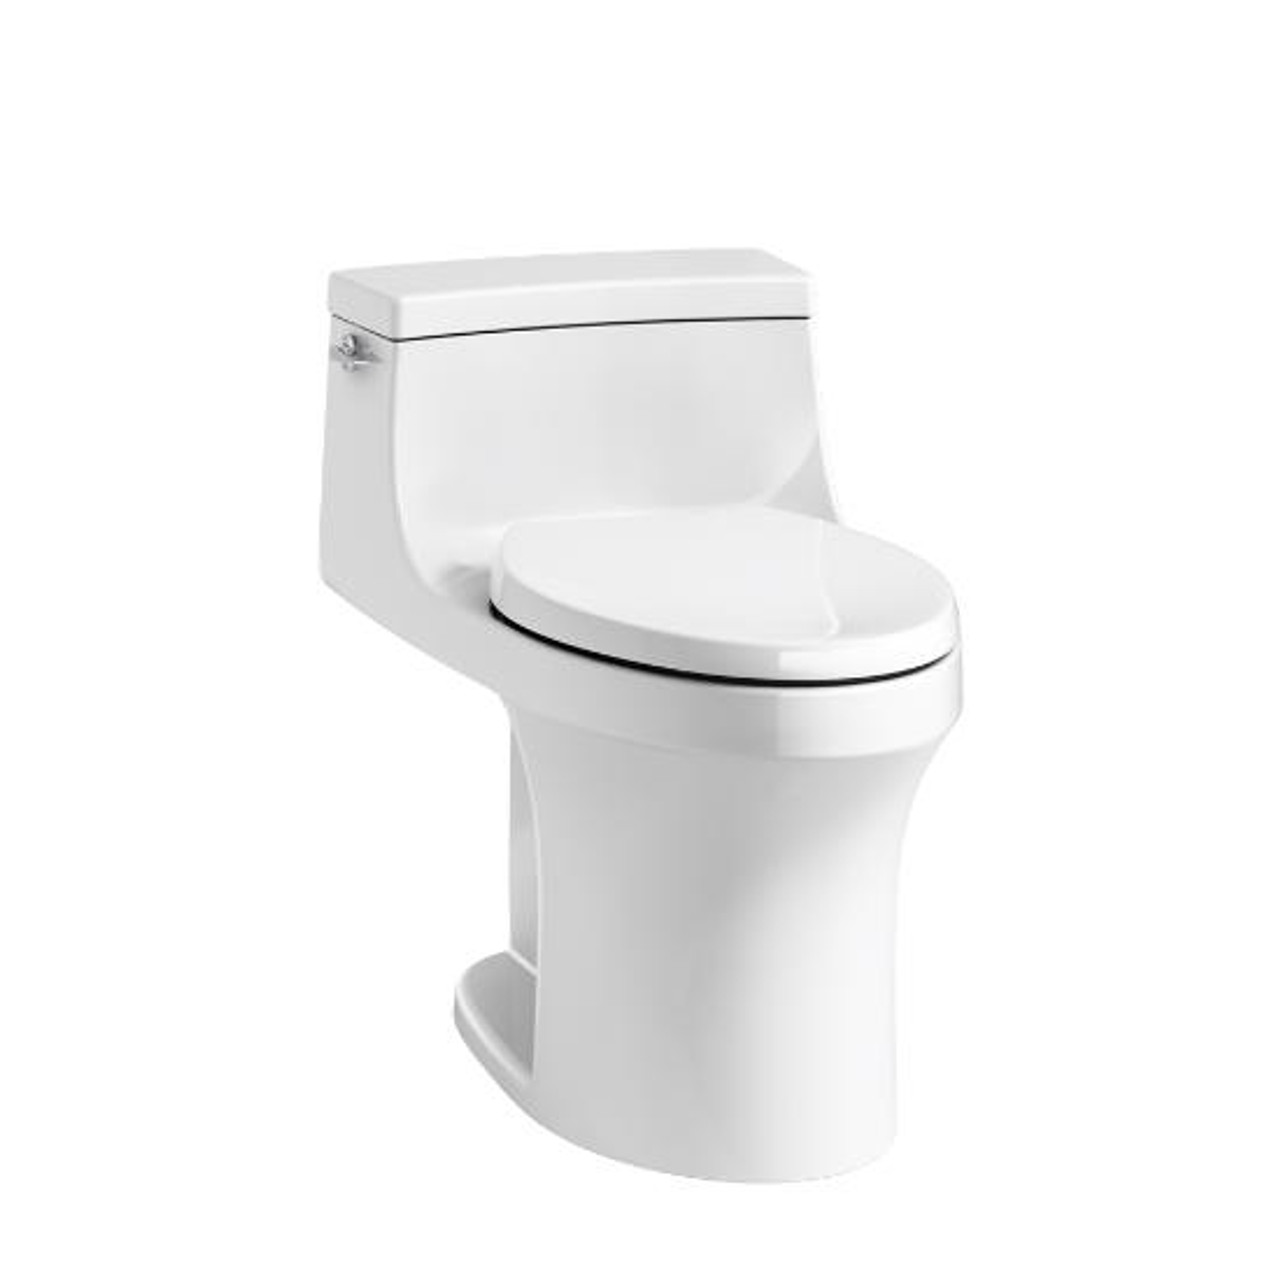 Kohler San Souci® Comfort Height® one-piece compact elongated 1 28 gpf  toilet with AquaPiston® flushing technology left-hand trip lever, concealed